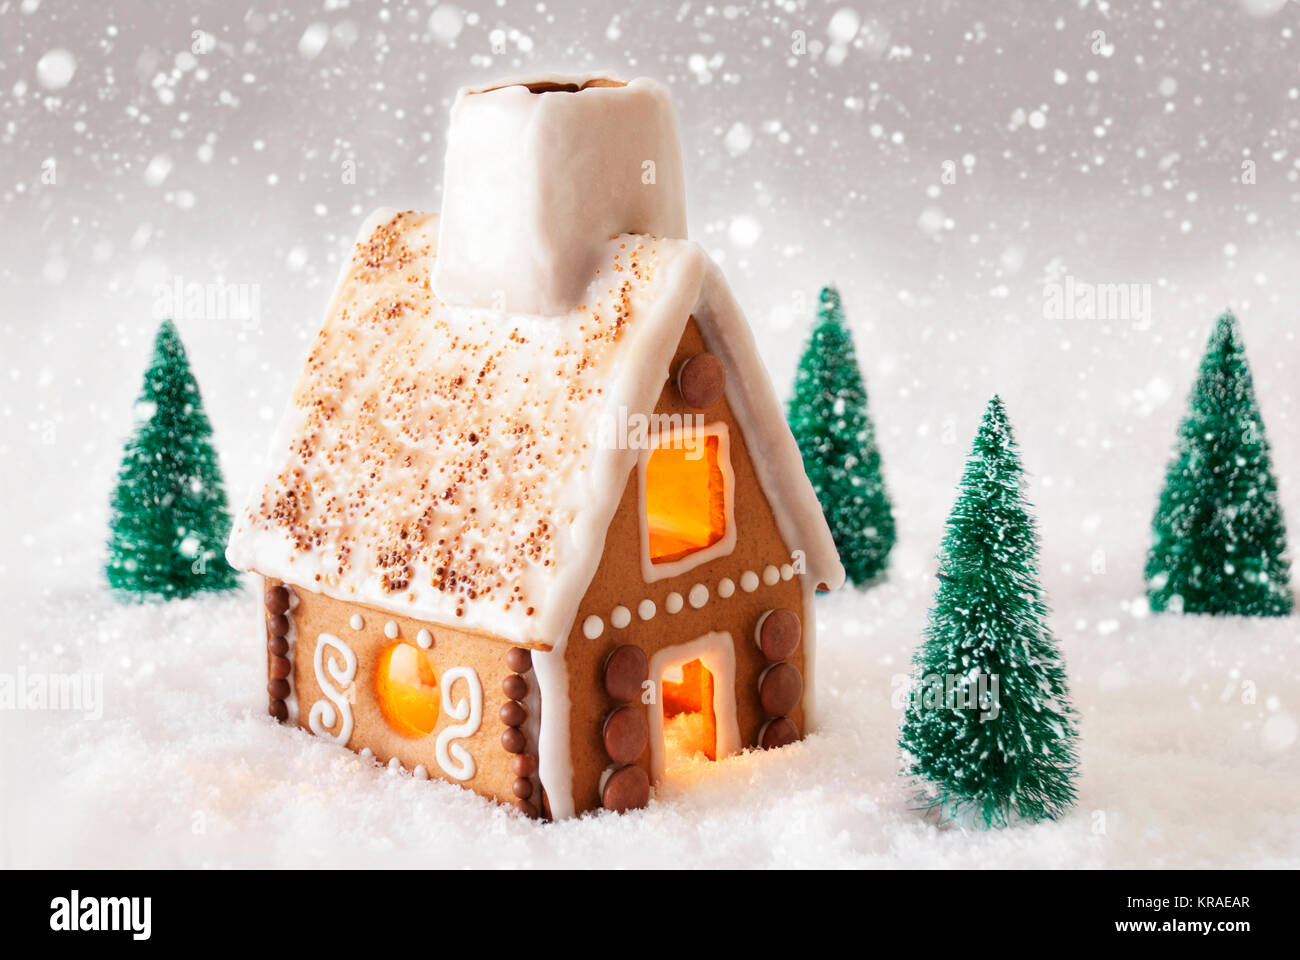 Gingerbread House In Snowy Scenery As Christmas Decoration